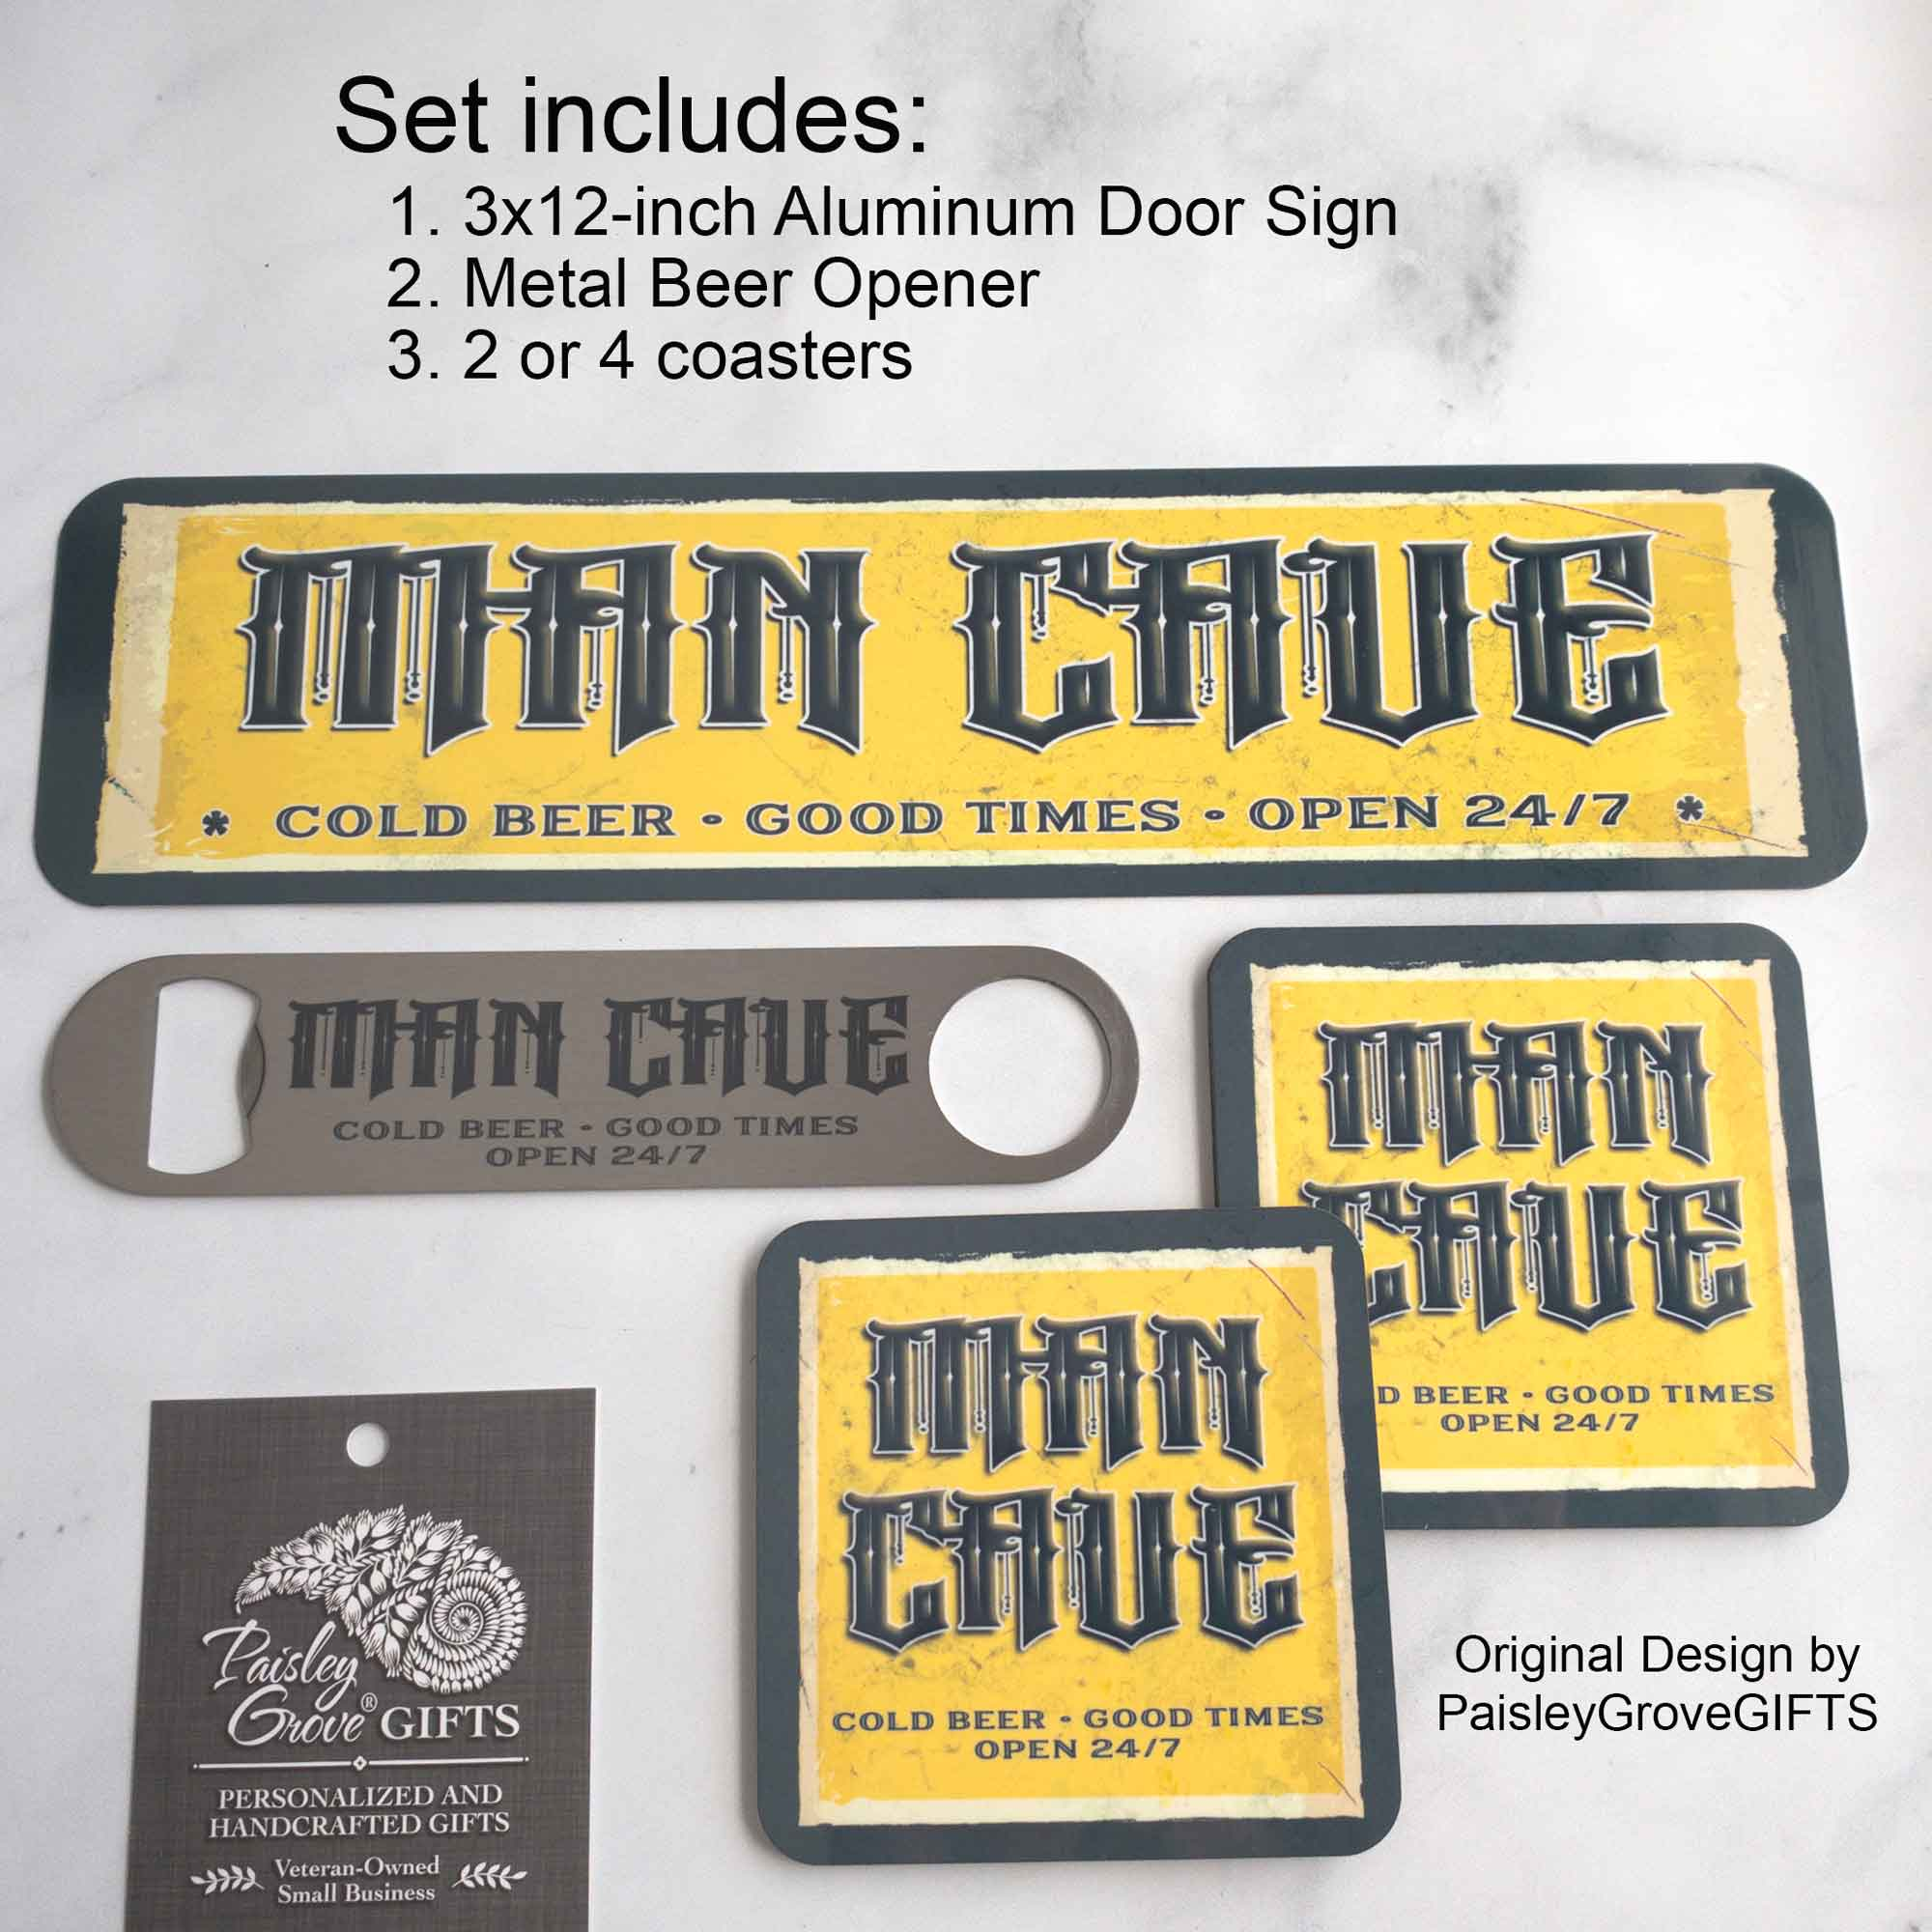 Mancave Decor Set with Sign, Coasters, and Bottle Opener in Vintage Yellow | PaisleyGroveGIFTS S957b